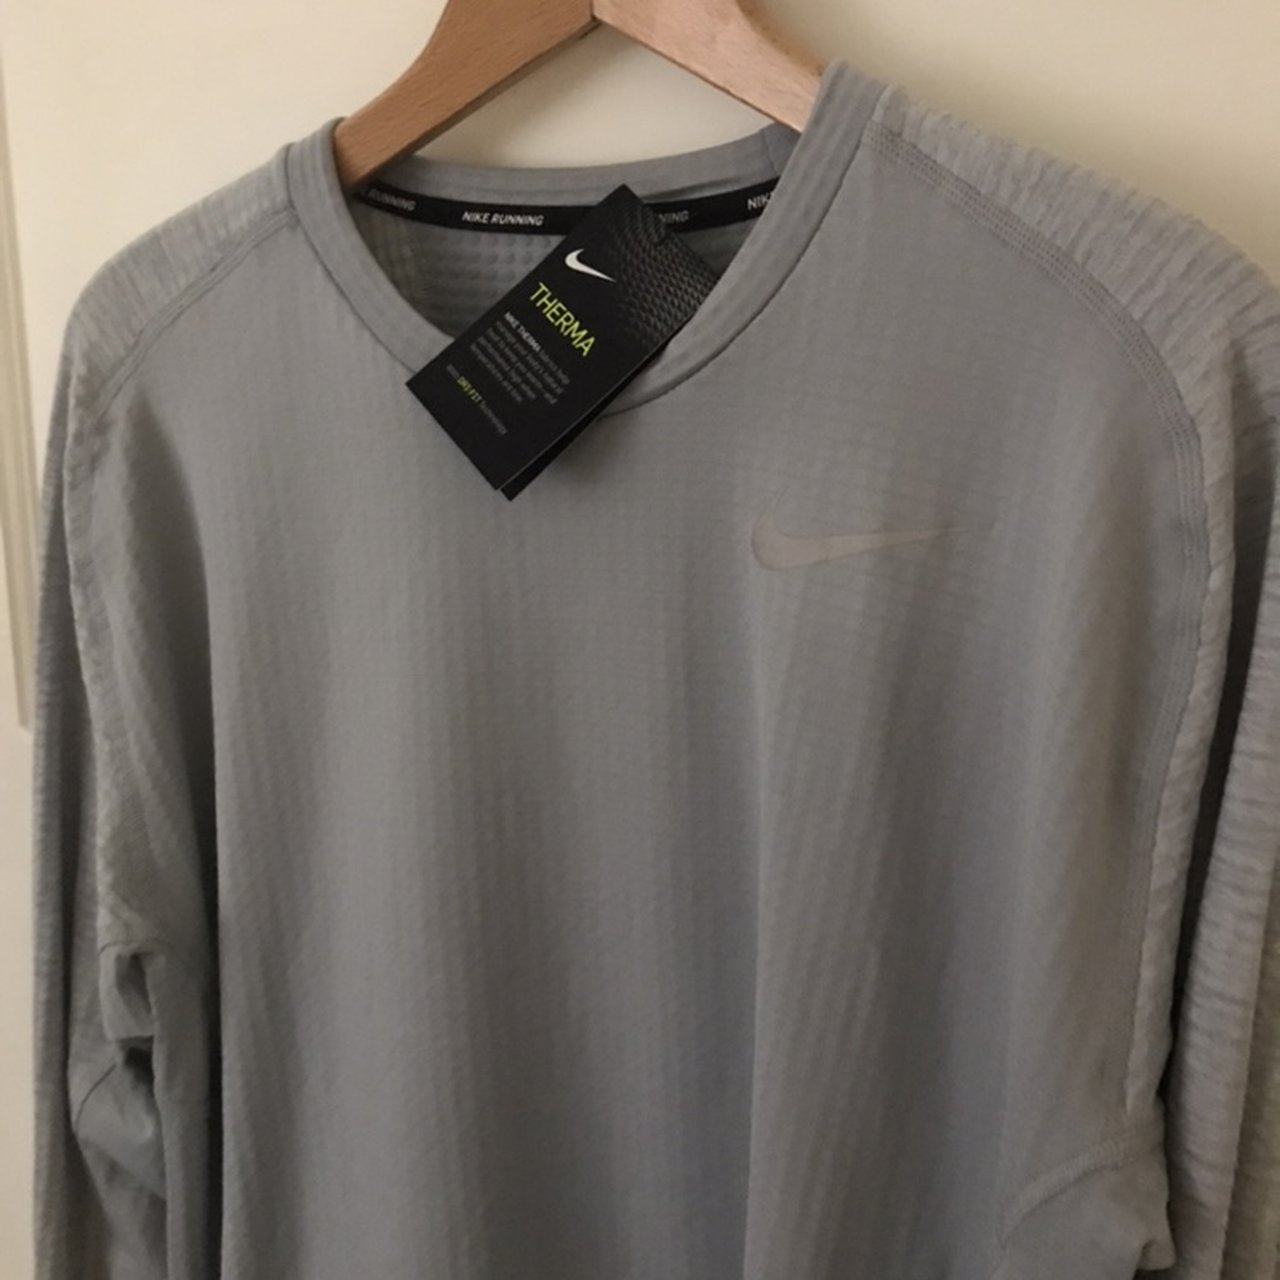 North London Nike s Shop - Depop 8e2cc0ef6